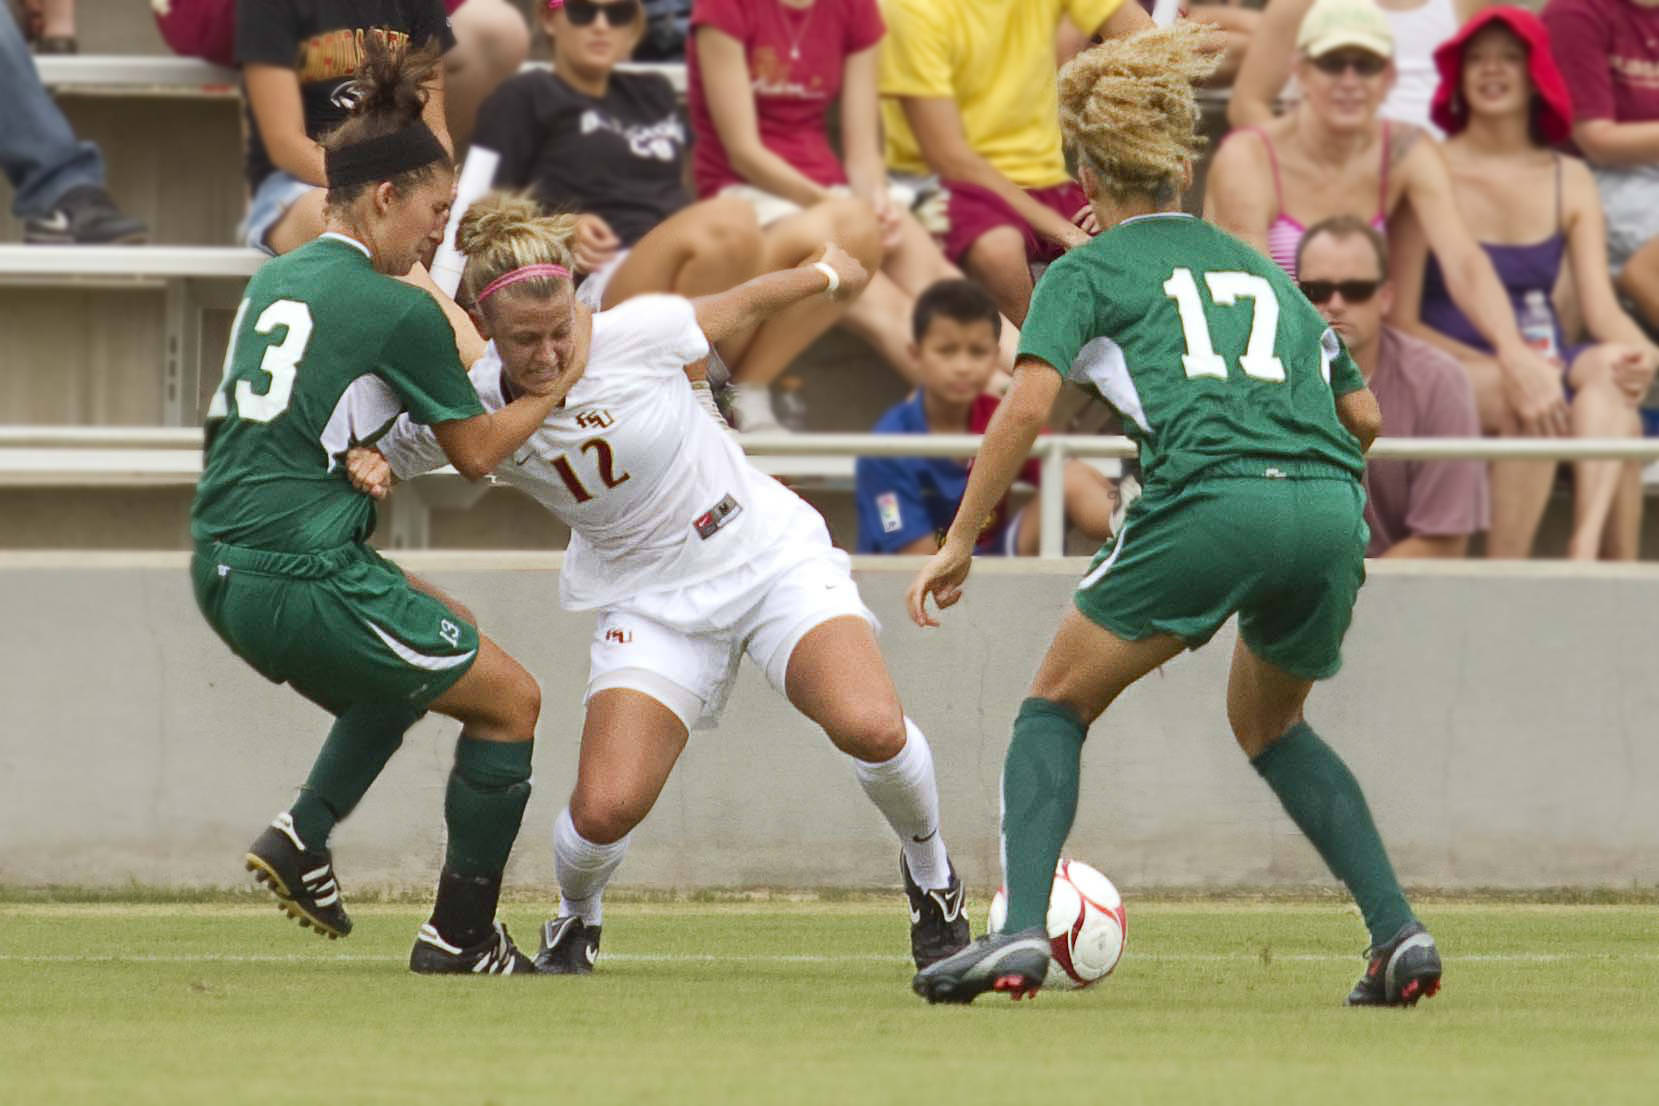 Breezy Hupp (12) is grabbed by the neck and pulled to the ground by a Stetson player.